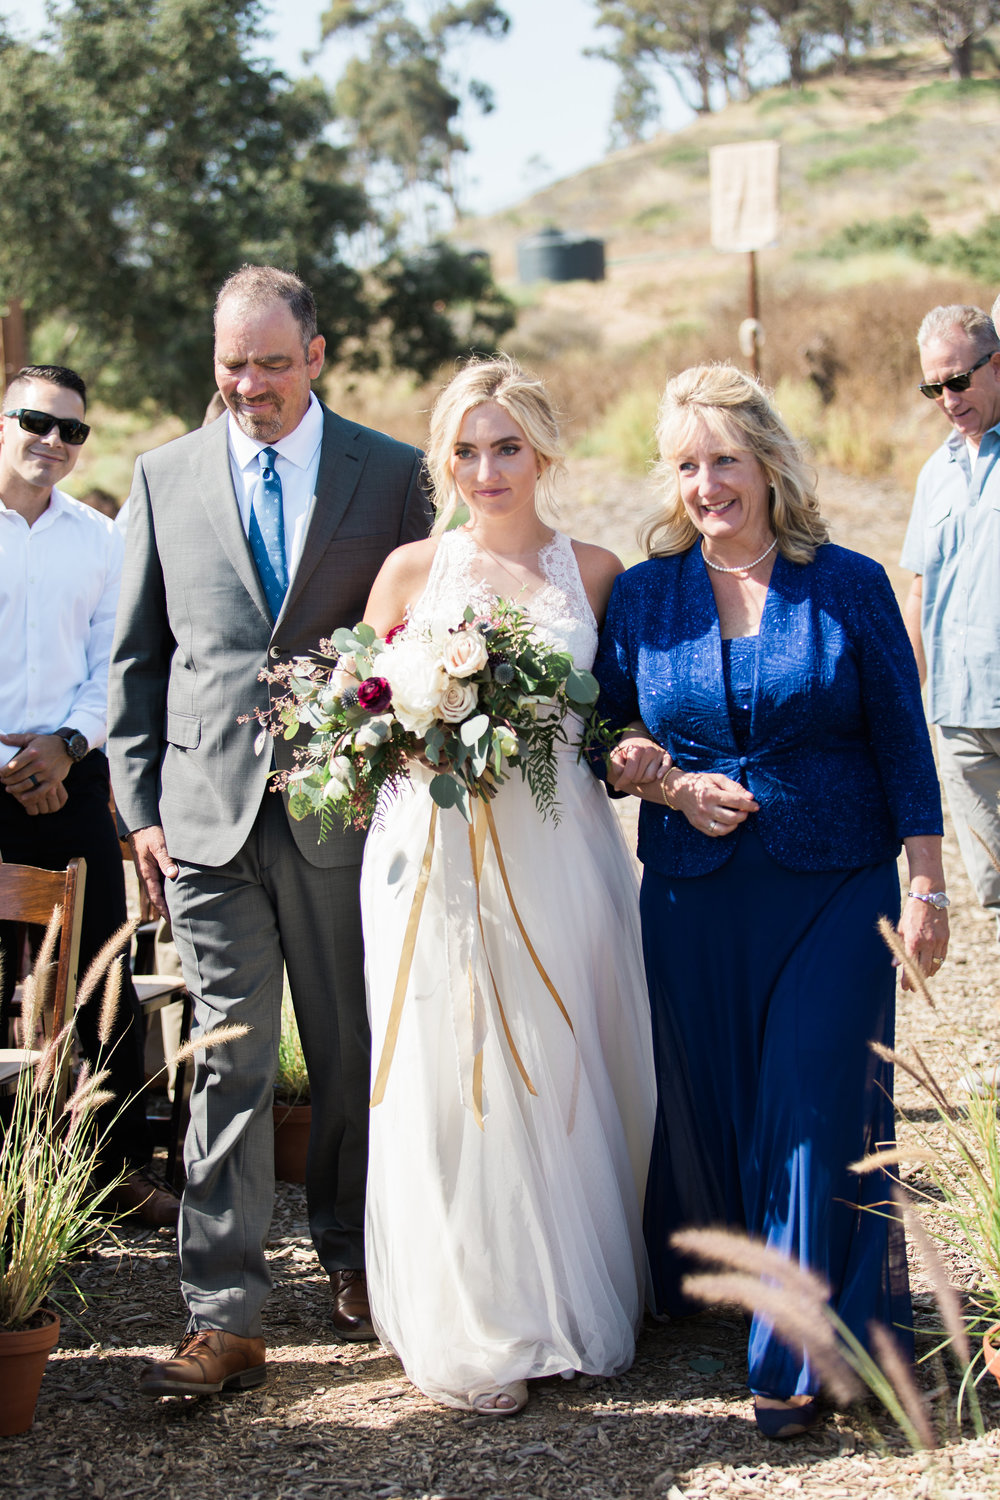 www.santabarbarawedding.com | Ann Johnson | Katie Shuler Photography | Ventura Botanical Gardens | Bride Walking Down the Aisle